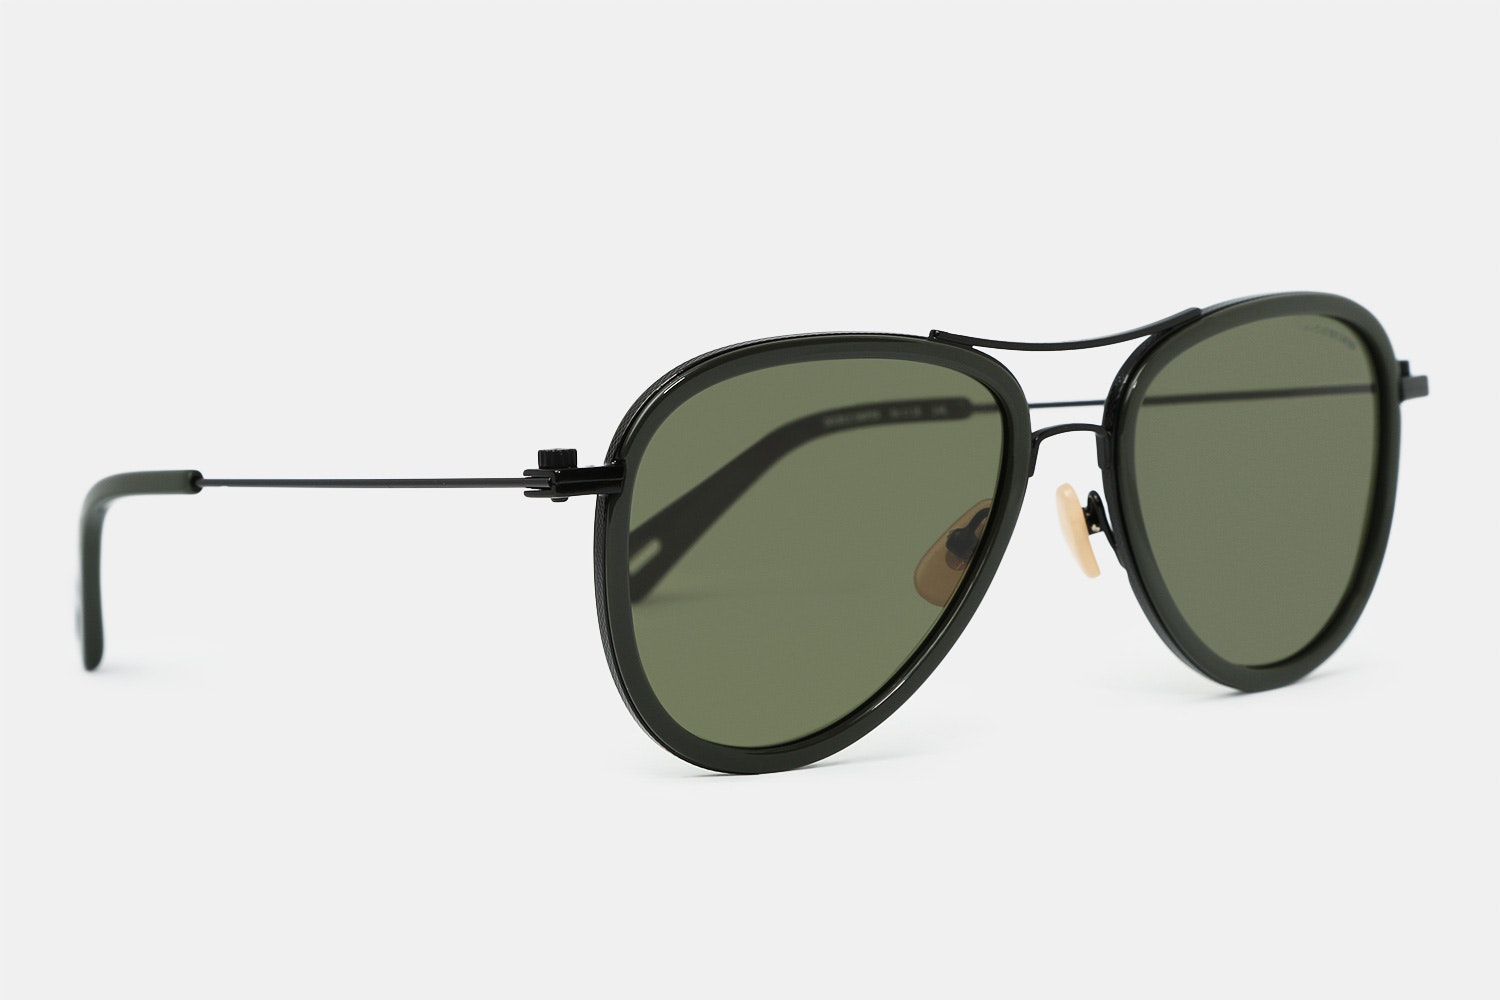 G-Star Raw Double Sniper Sunglasses